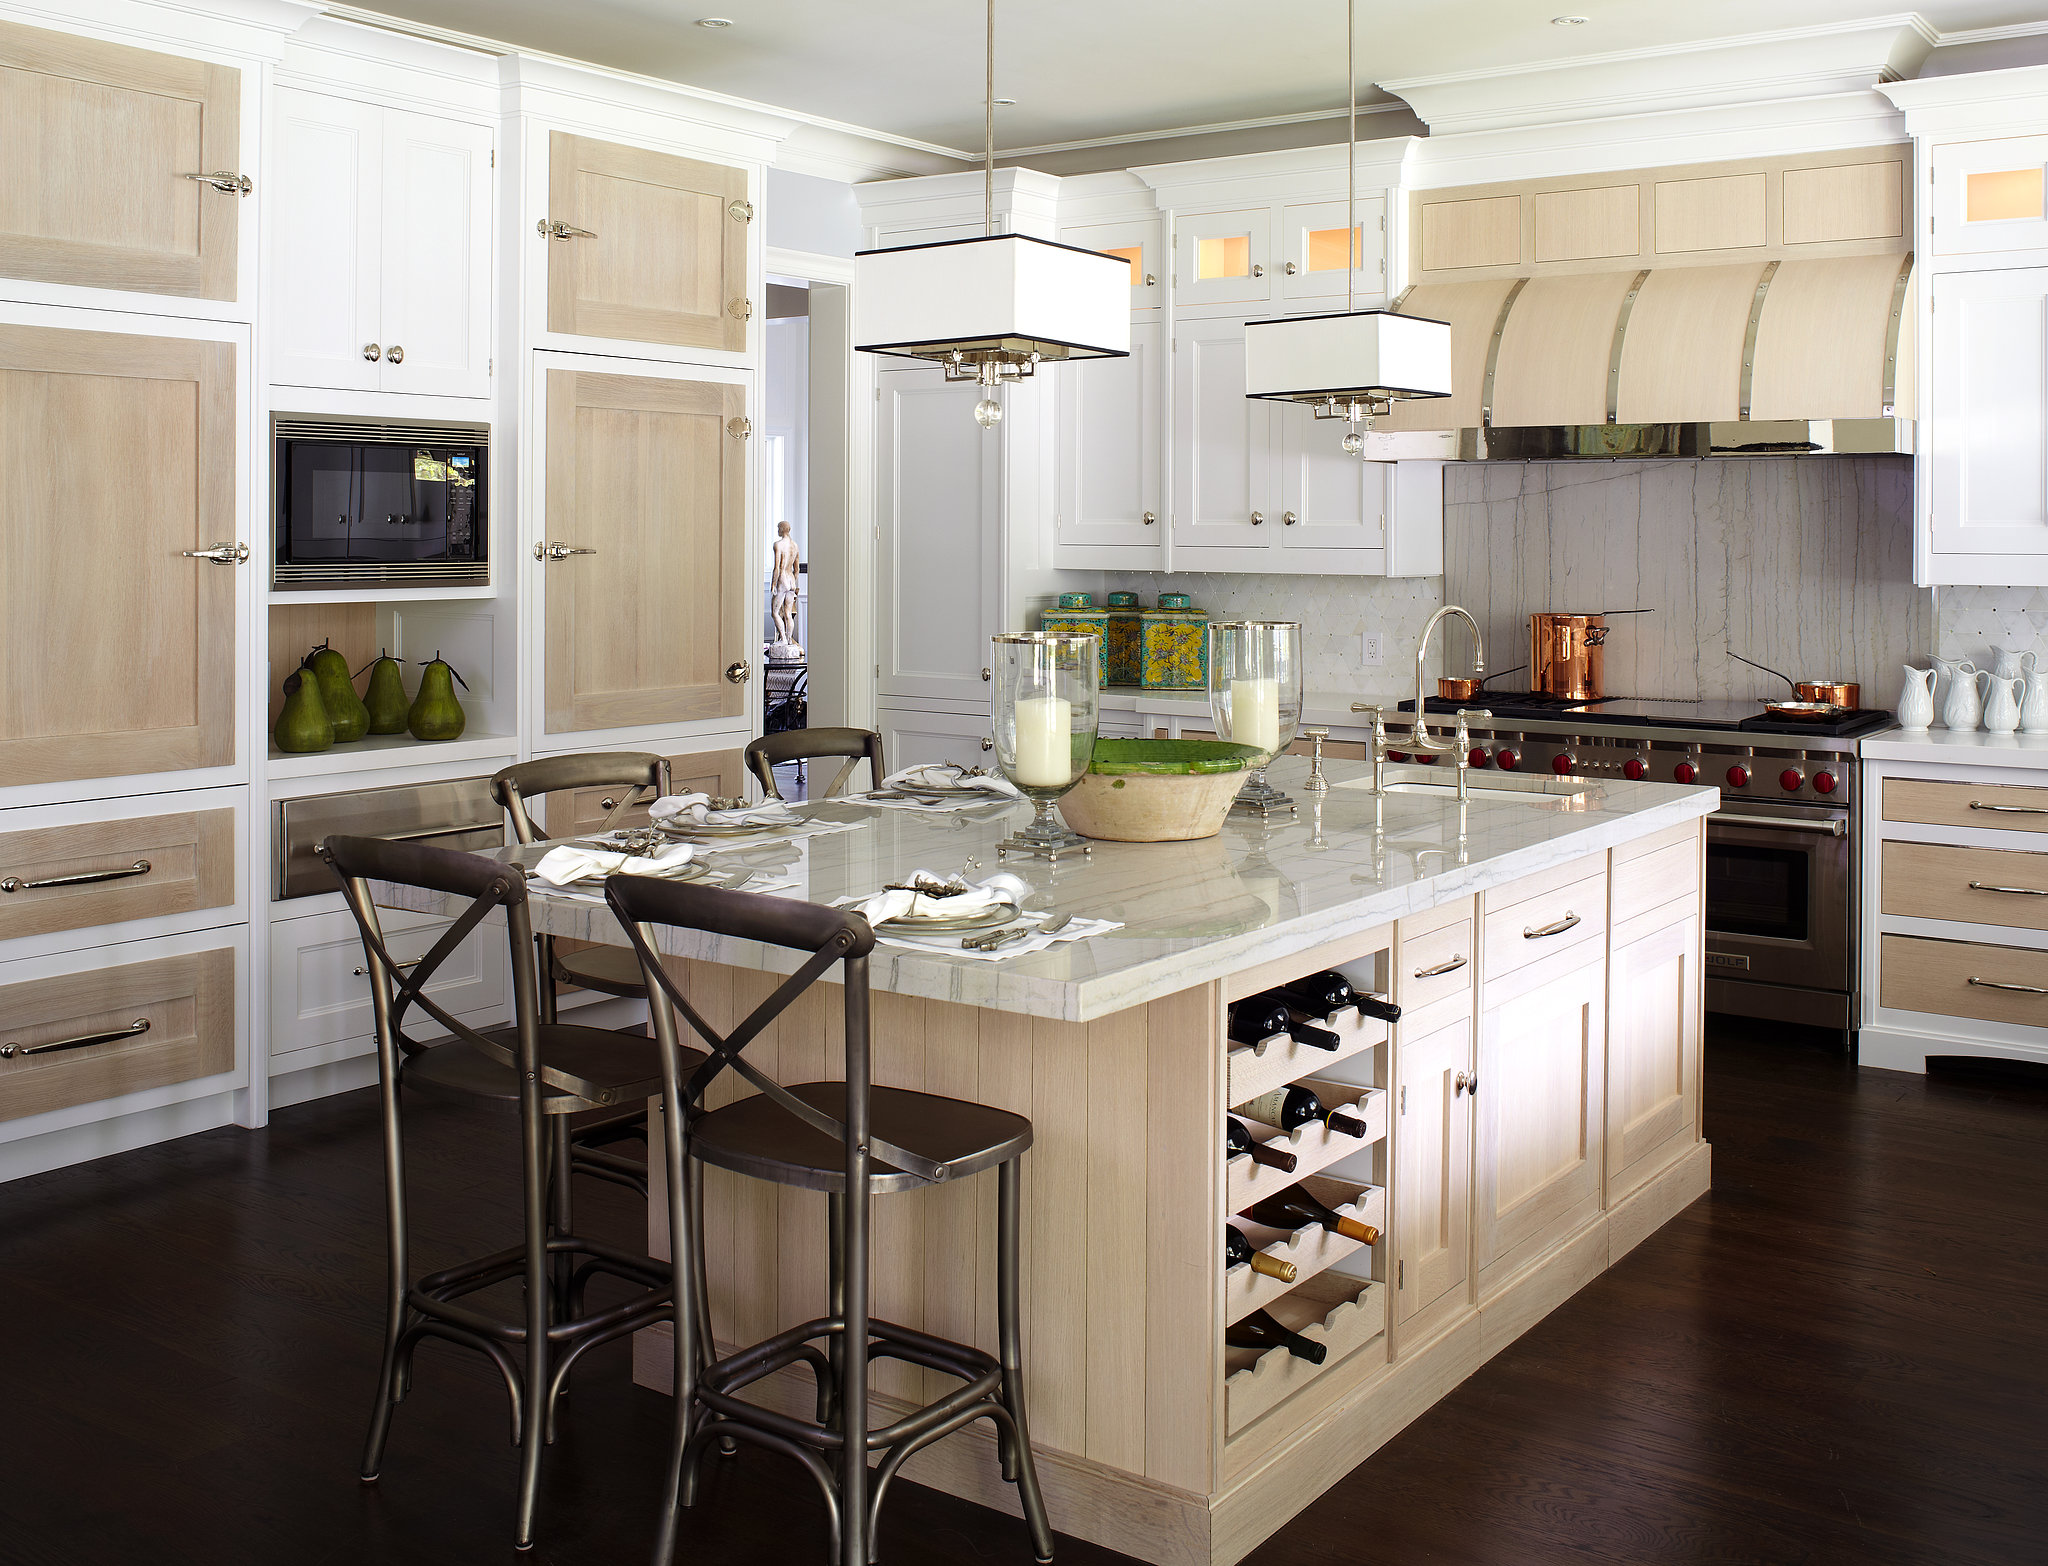 Pale wood cabinetry white paint lend eternal summer vibe